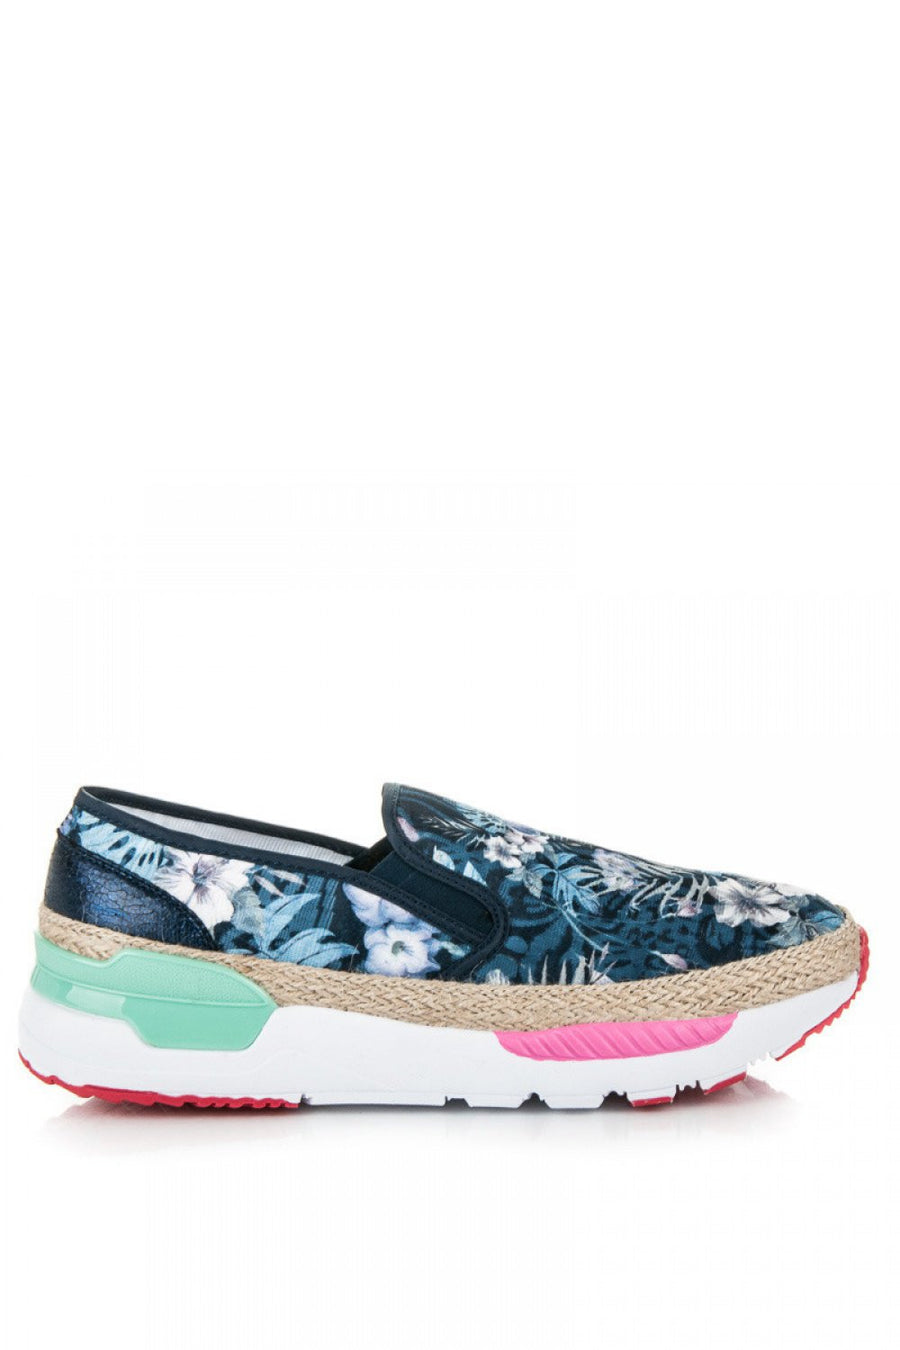 Espadrille 78532 Zoki-Women`s Athletic Shoes, Trainers, Sneakers-Zoki-Très Fancy